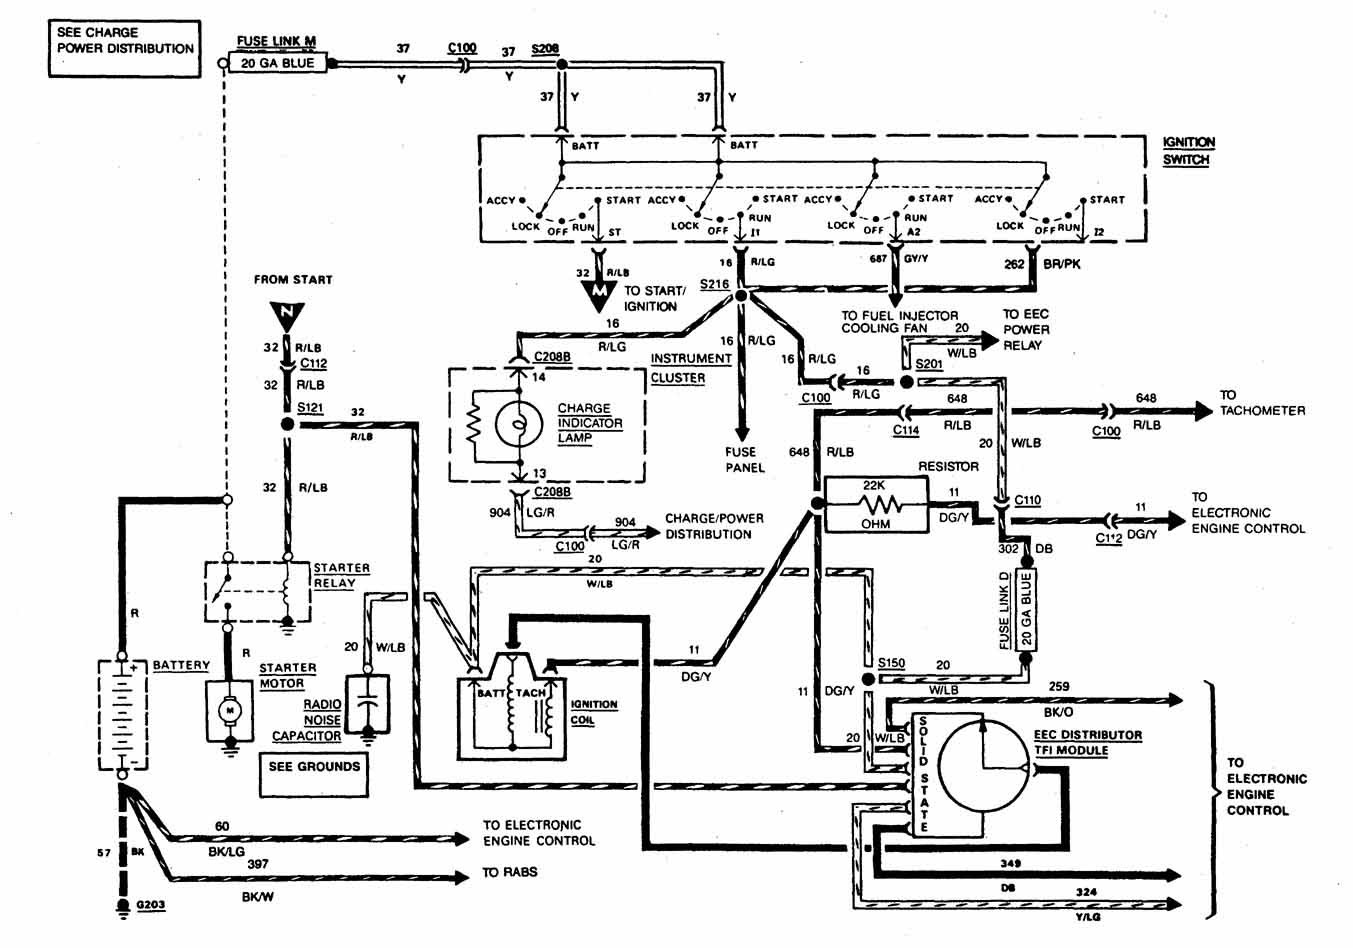 1984 Ford F150 Starter Solenoid Wiring Diagram Electrical Work